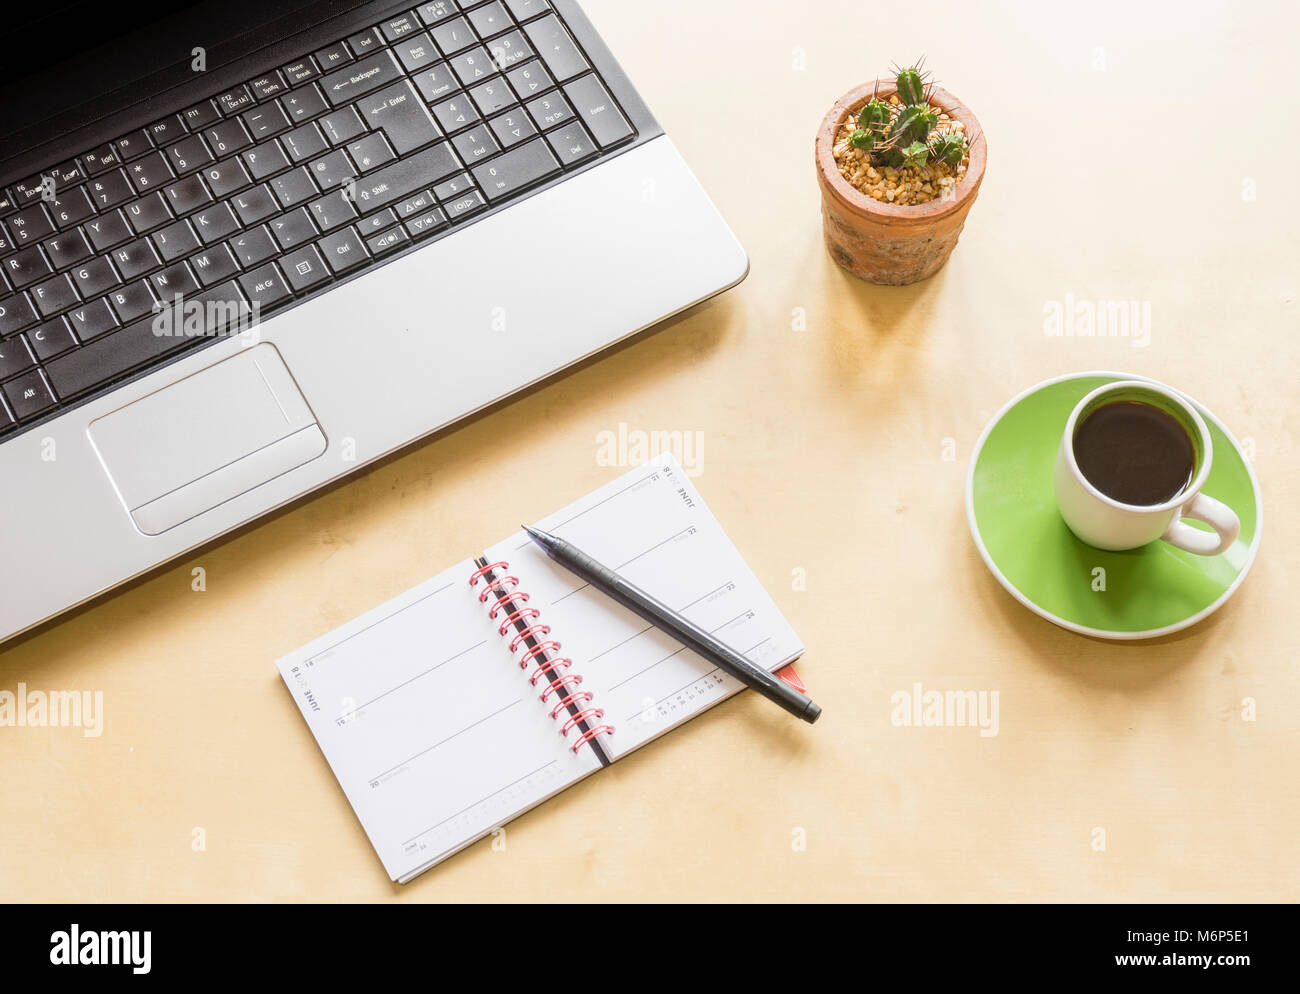 High-angle shot of a home office desk space with laptop, cactus plant, coffee cup and saucer and a calendar with Stock Photo